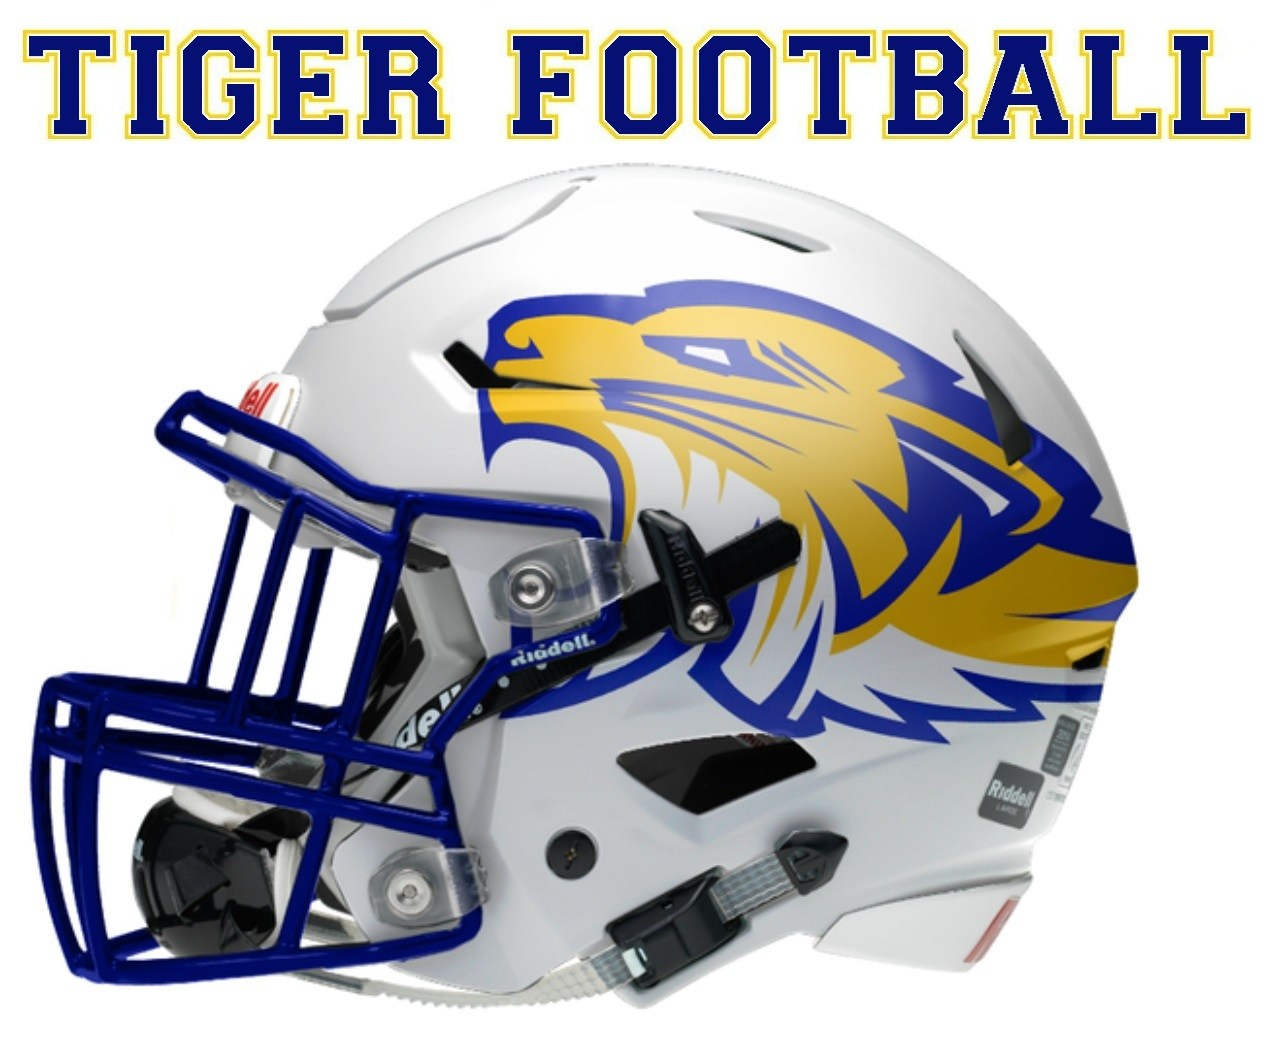 Frenship Tiger Football helmet